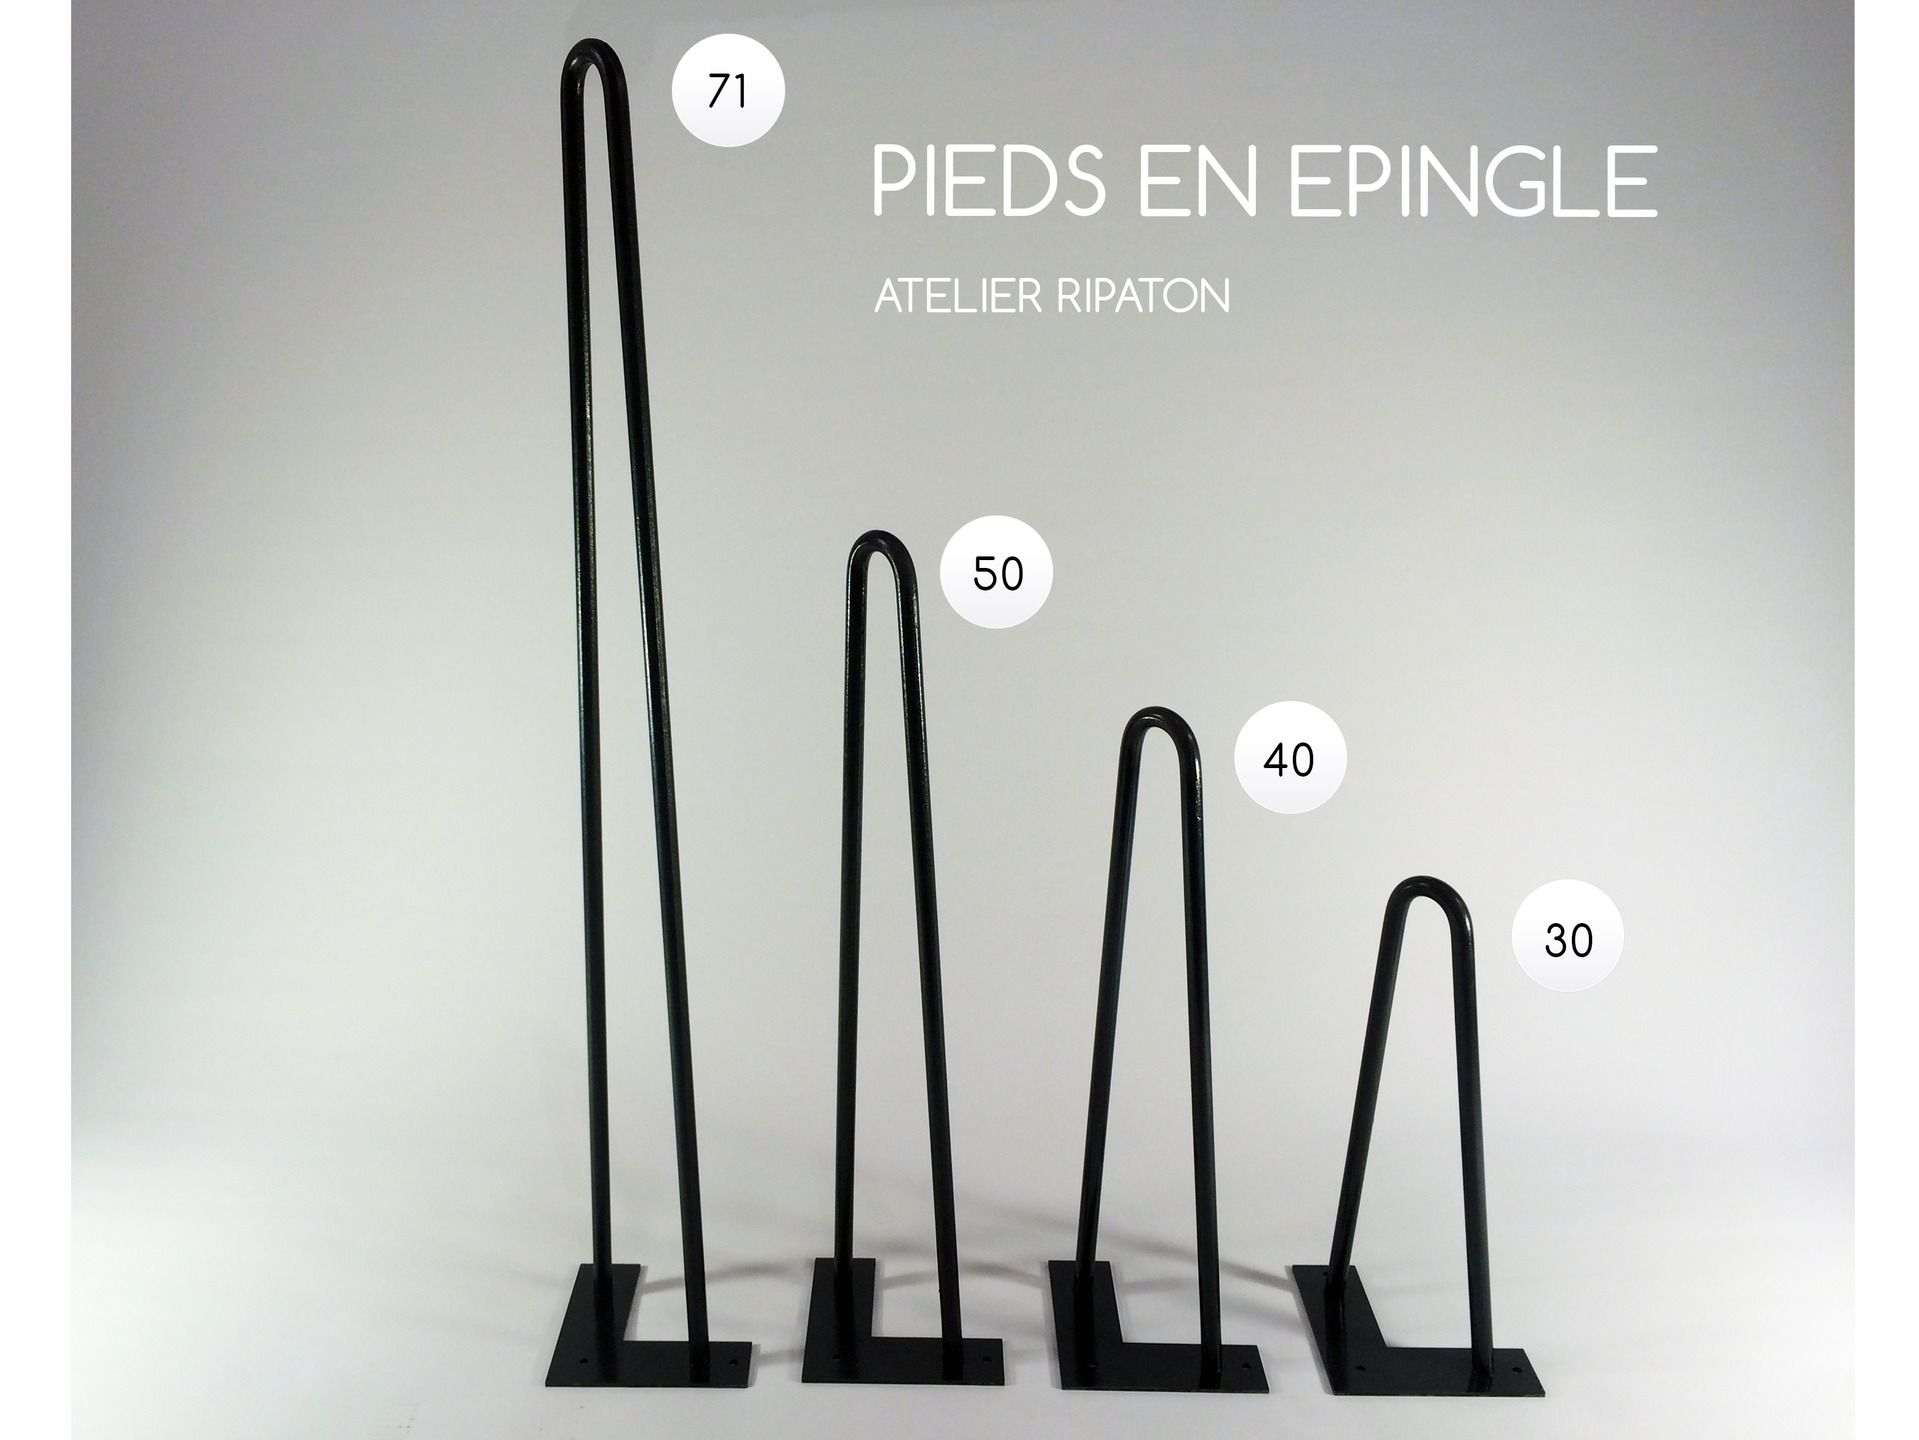 Pied de table en pingle 71 cm brut hairpin legs fait main pi tement de t - Pied de meuble design ...